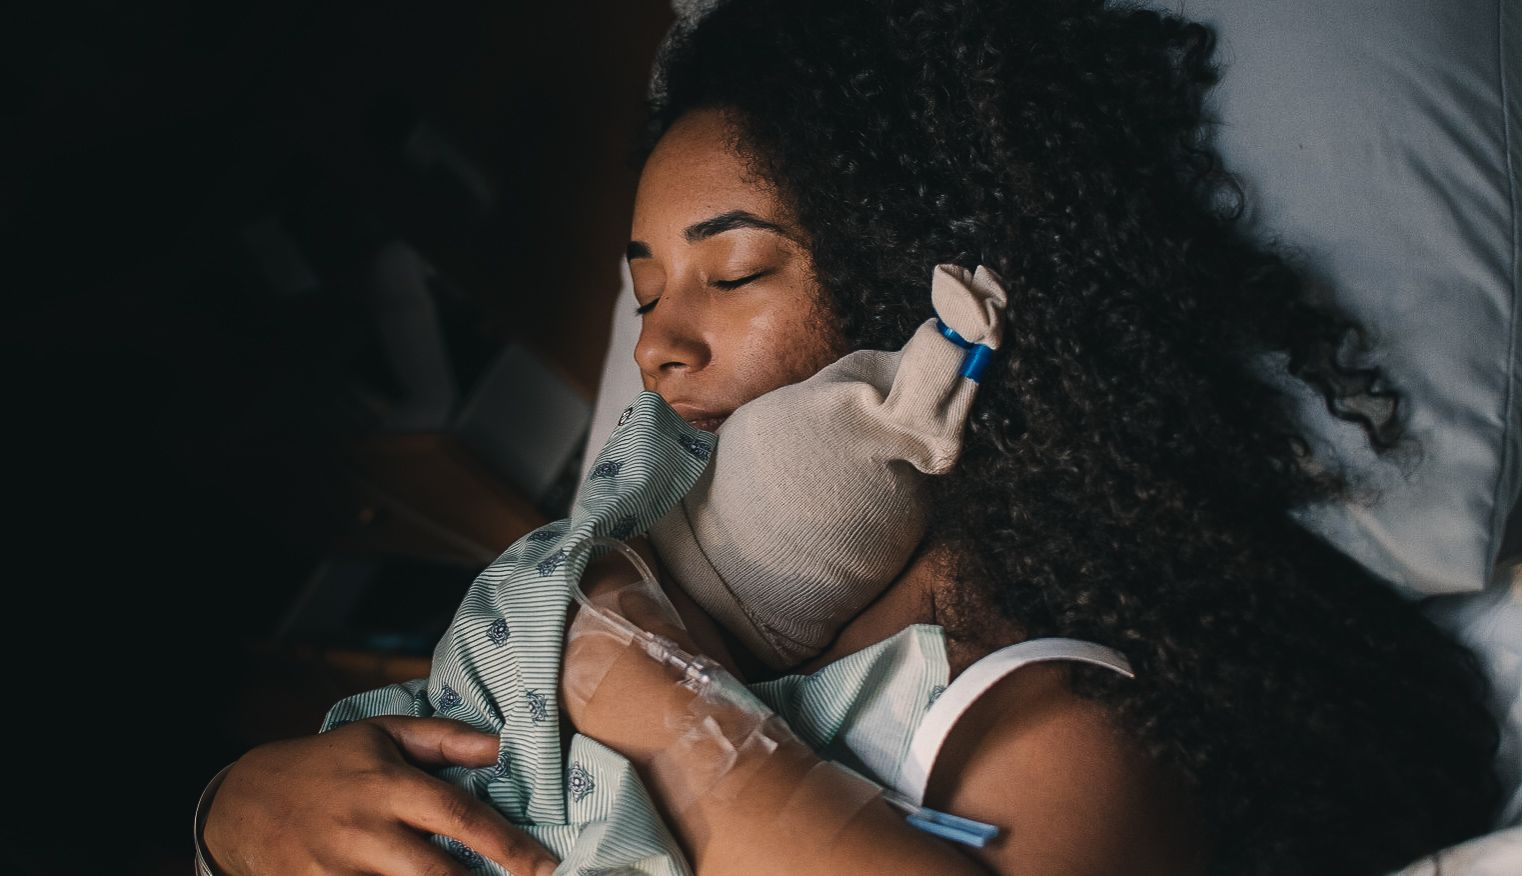 woman with eyes closed holding newborn on chest in hospital bed